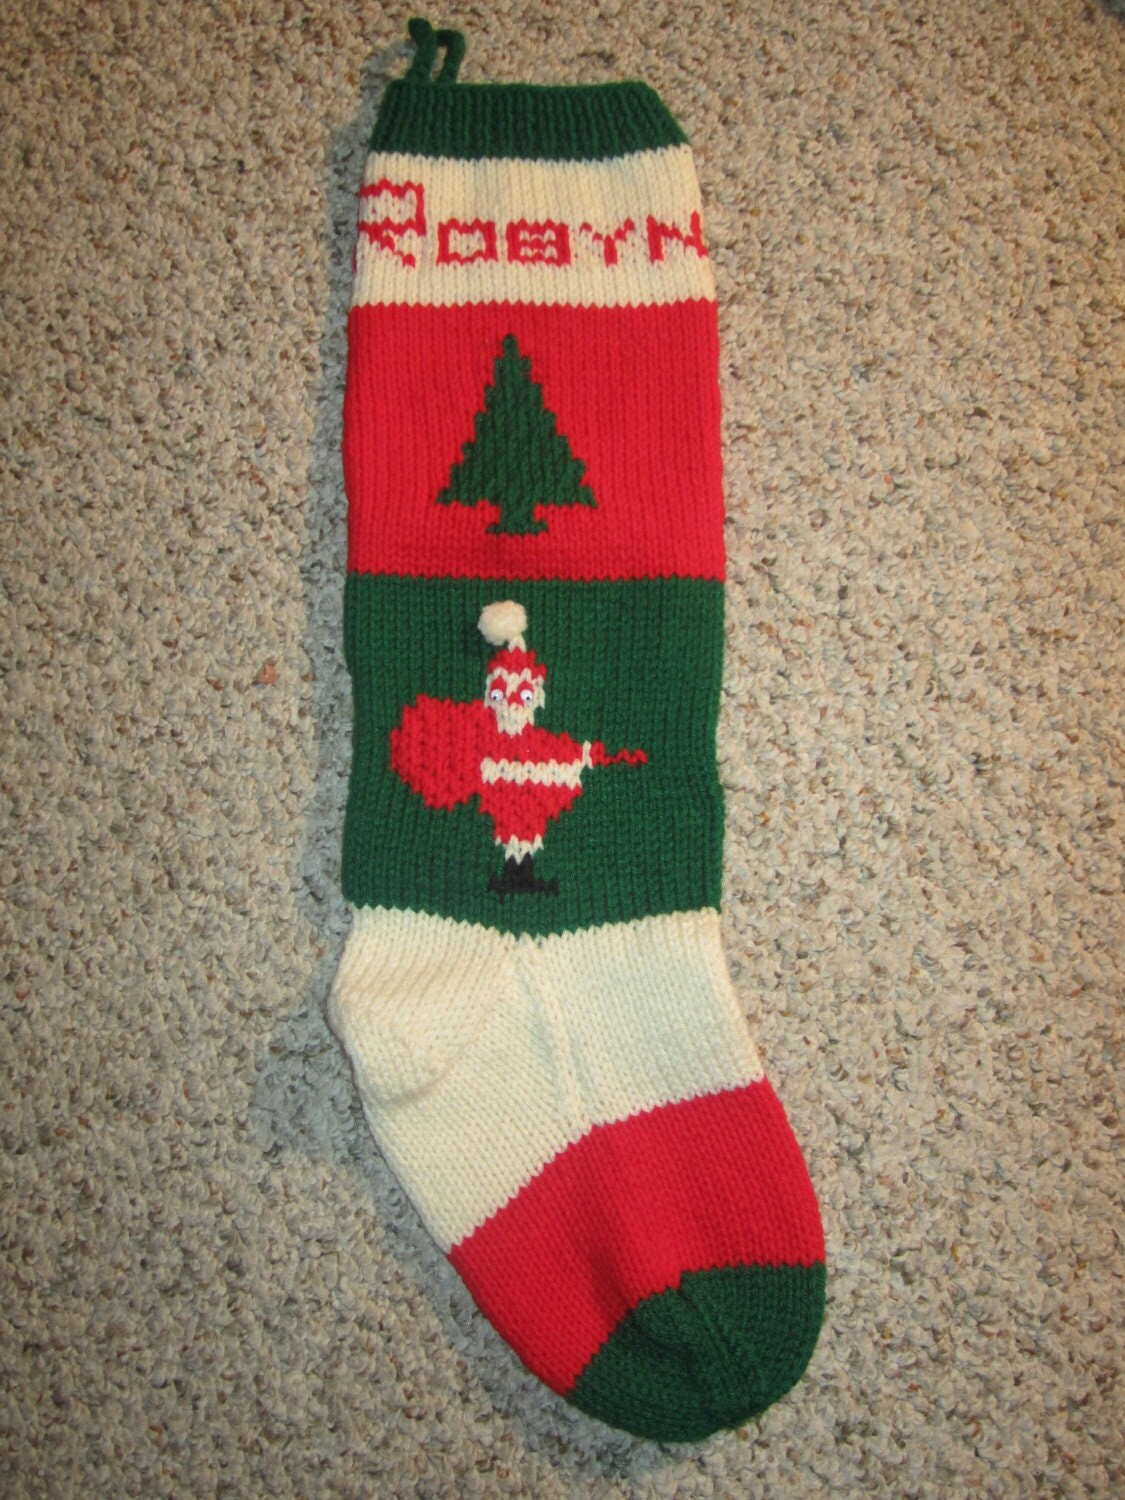 Knitted Christmas Stocking Patterns Personalized : Items similar to Personalized Hand Knit Christmas Stockings / Sock for Christ...